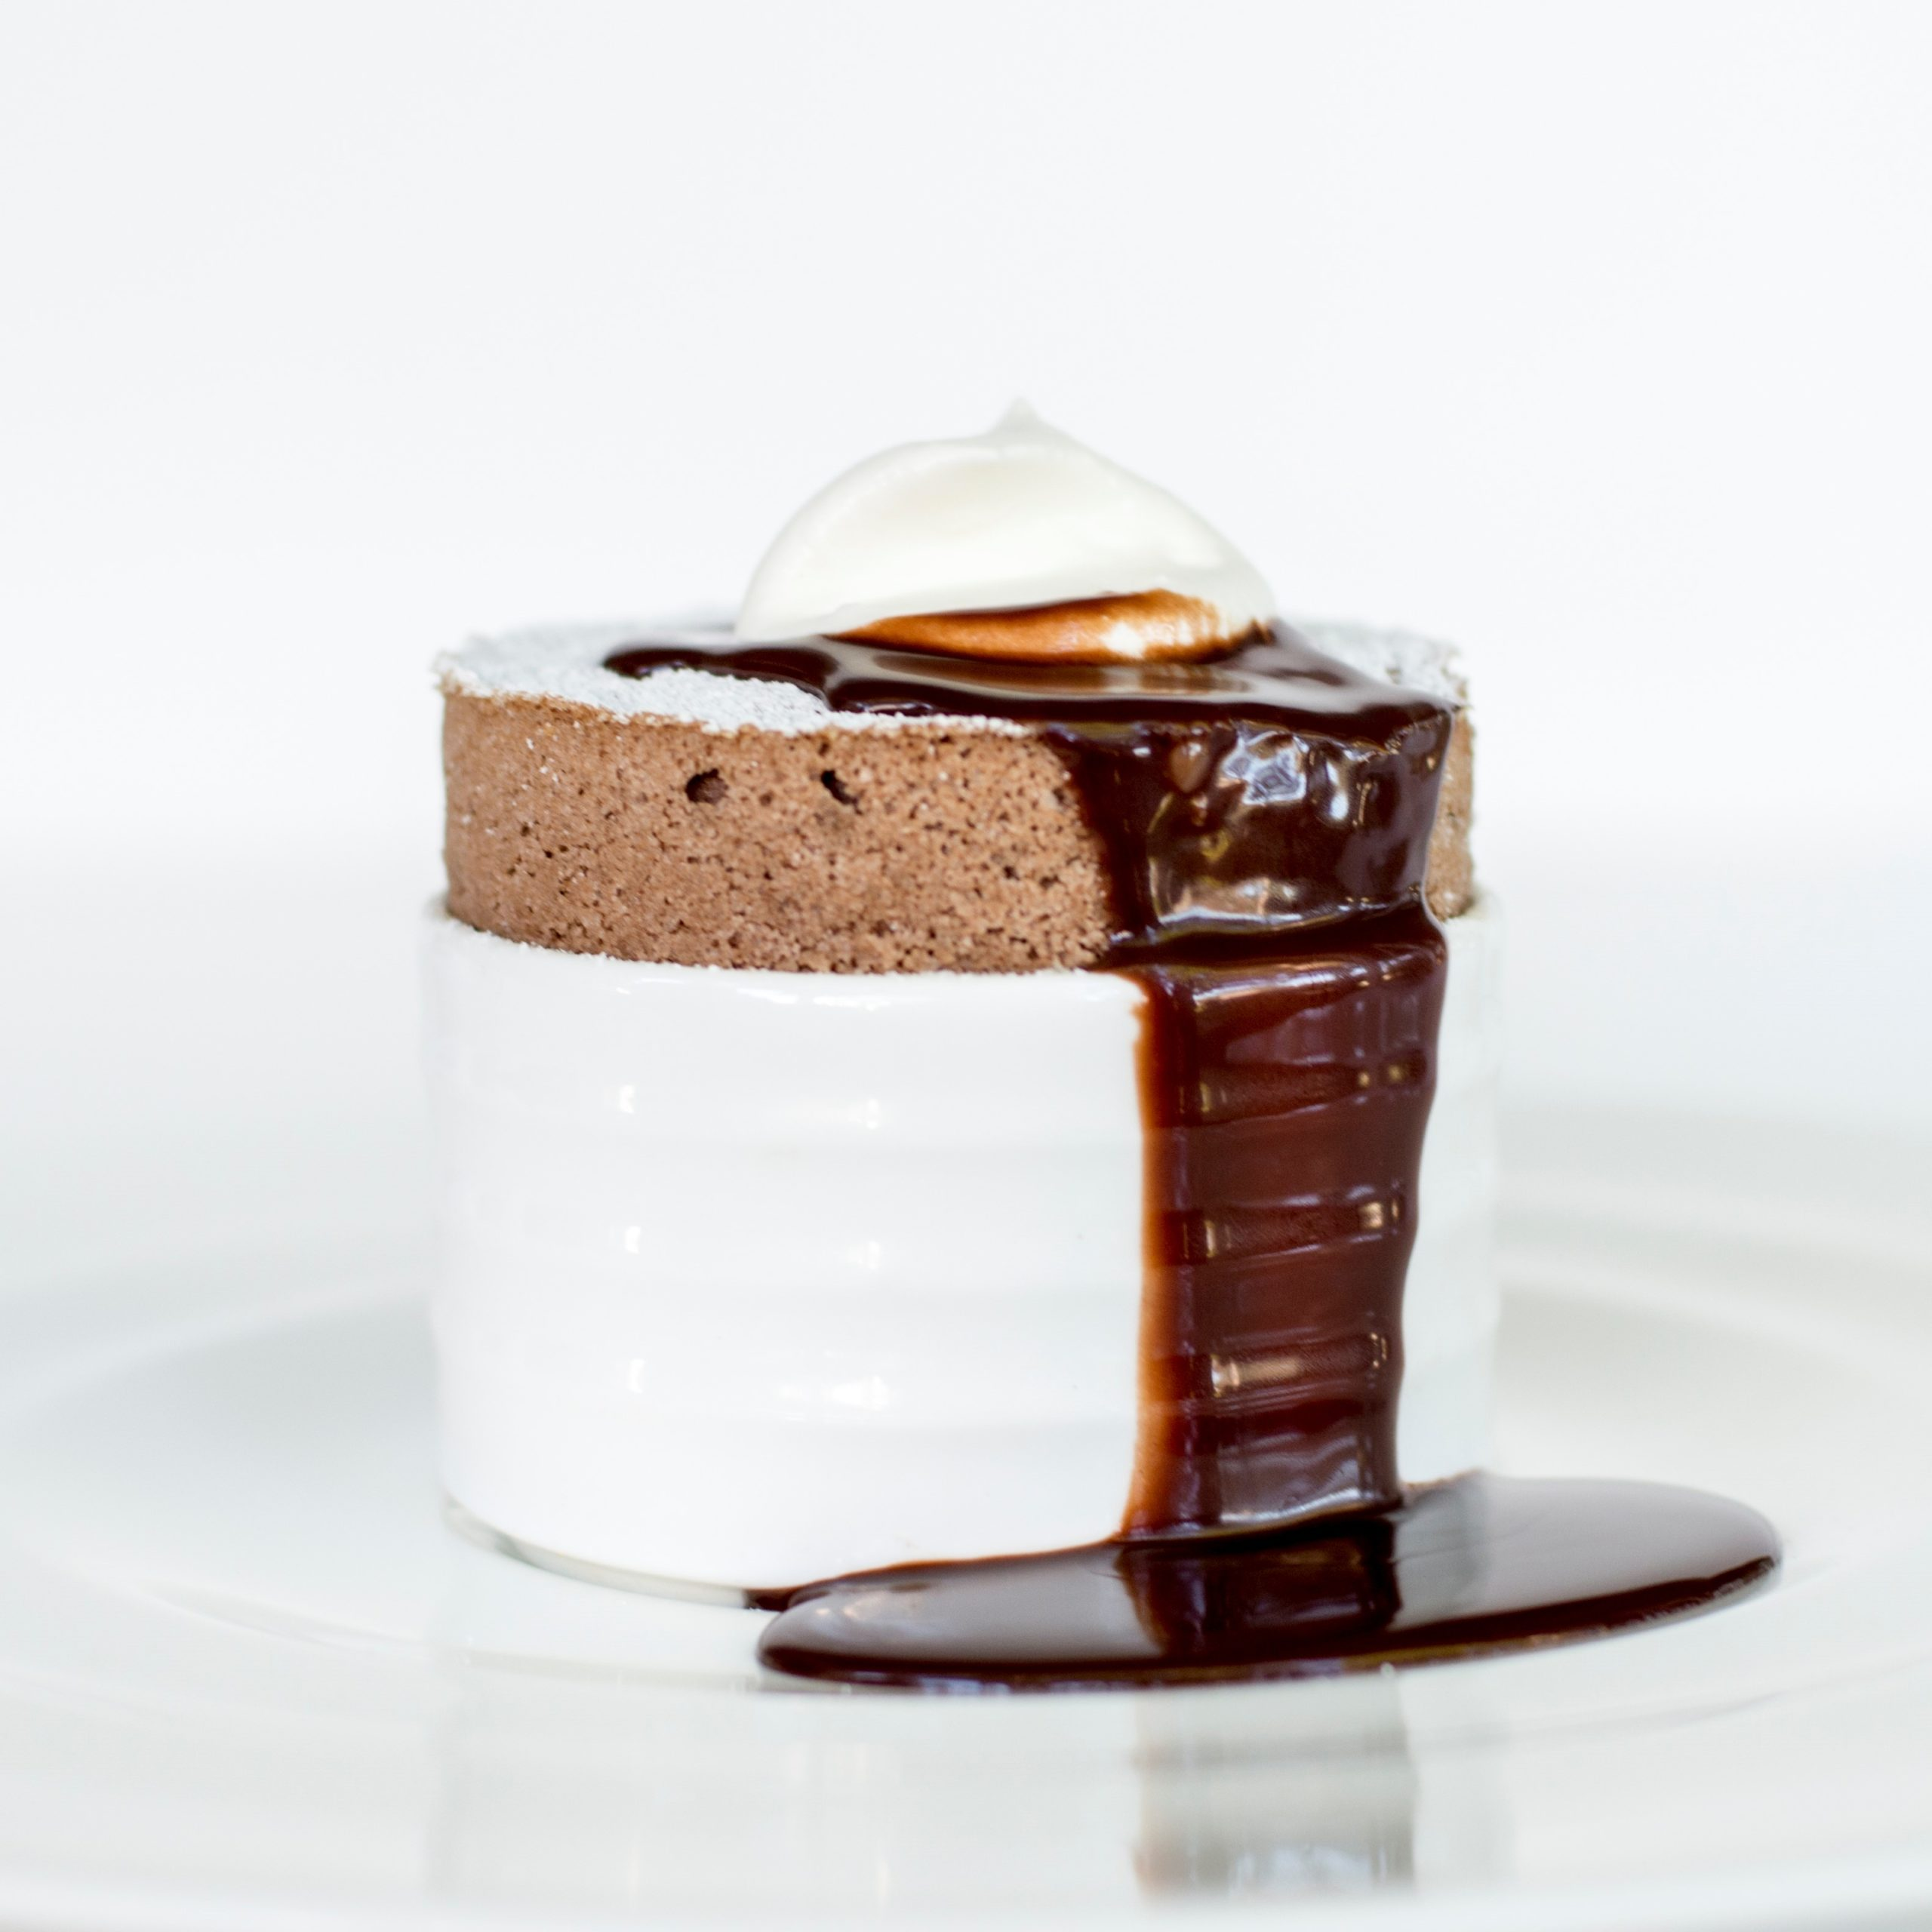 chocolate souffle at fearrington house